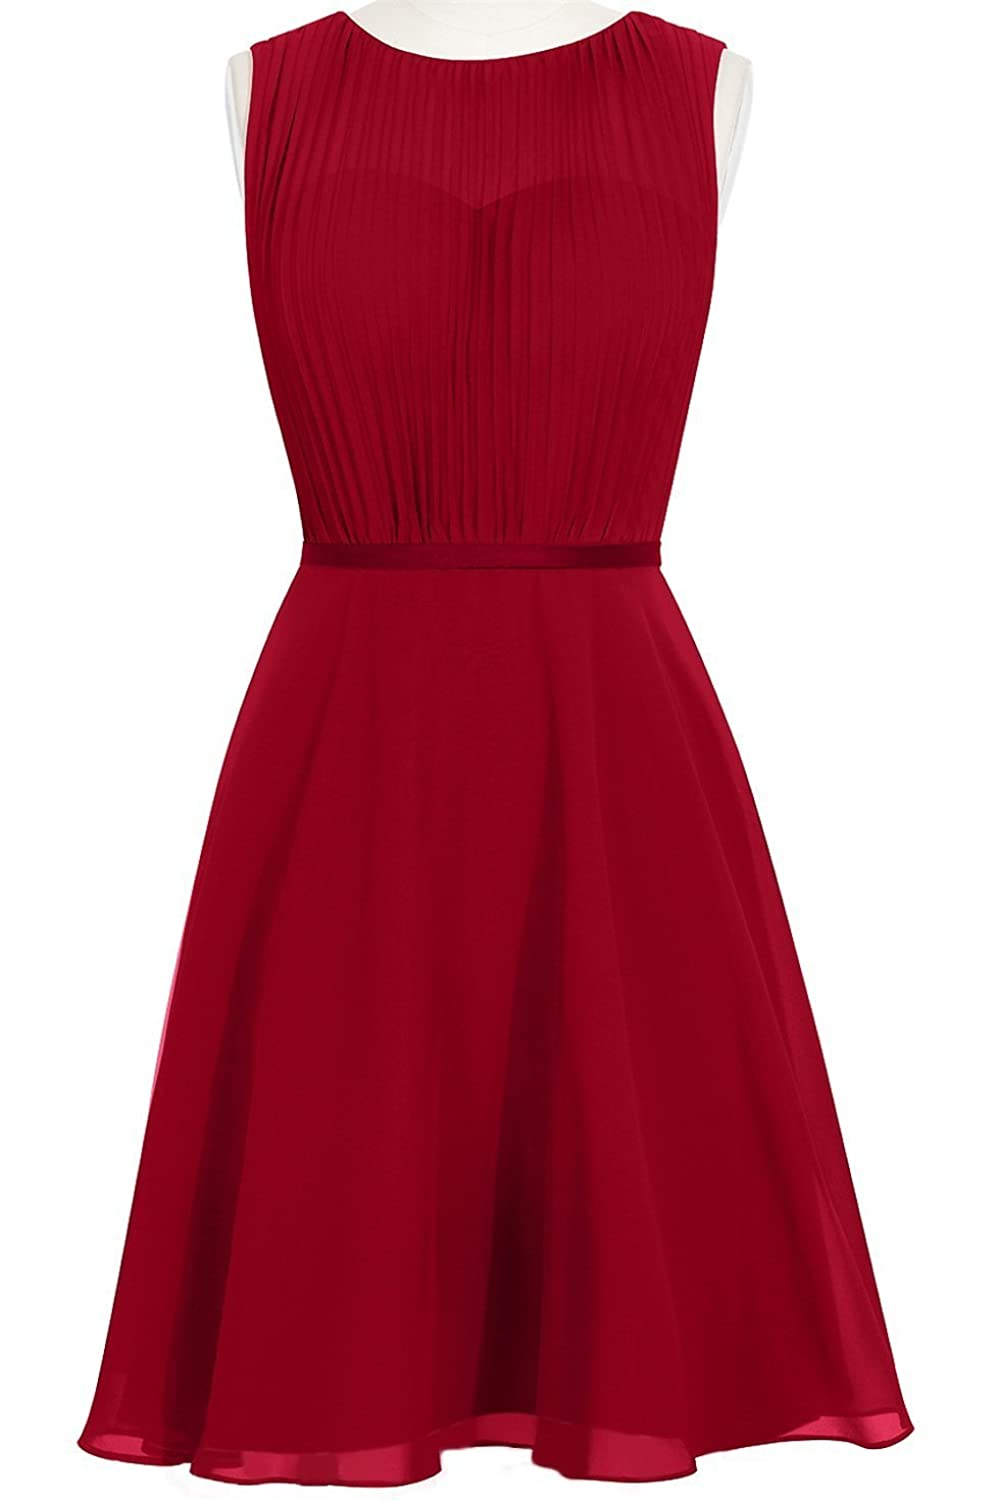 MittyDresses 2015 New Cocktail Homecoming Dresses for Girl Evening Party Size 24W US Burgundy